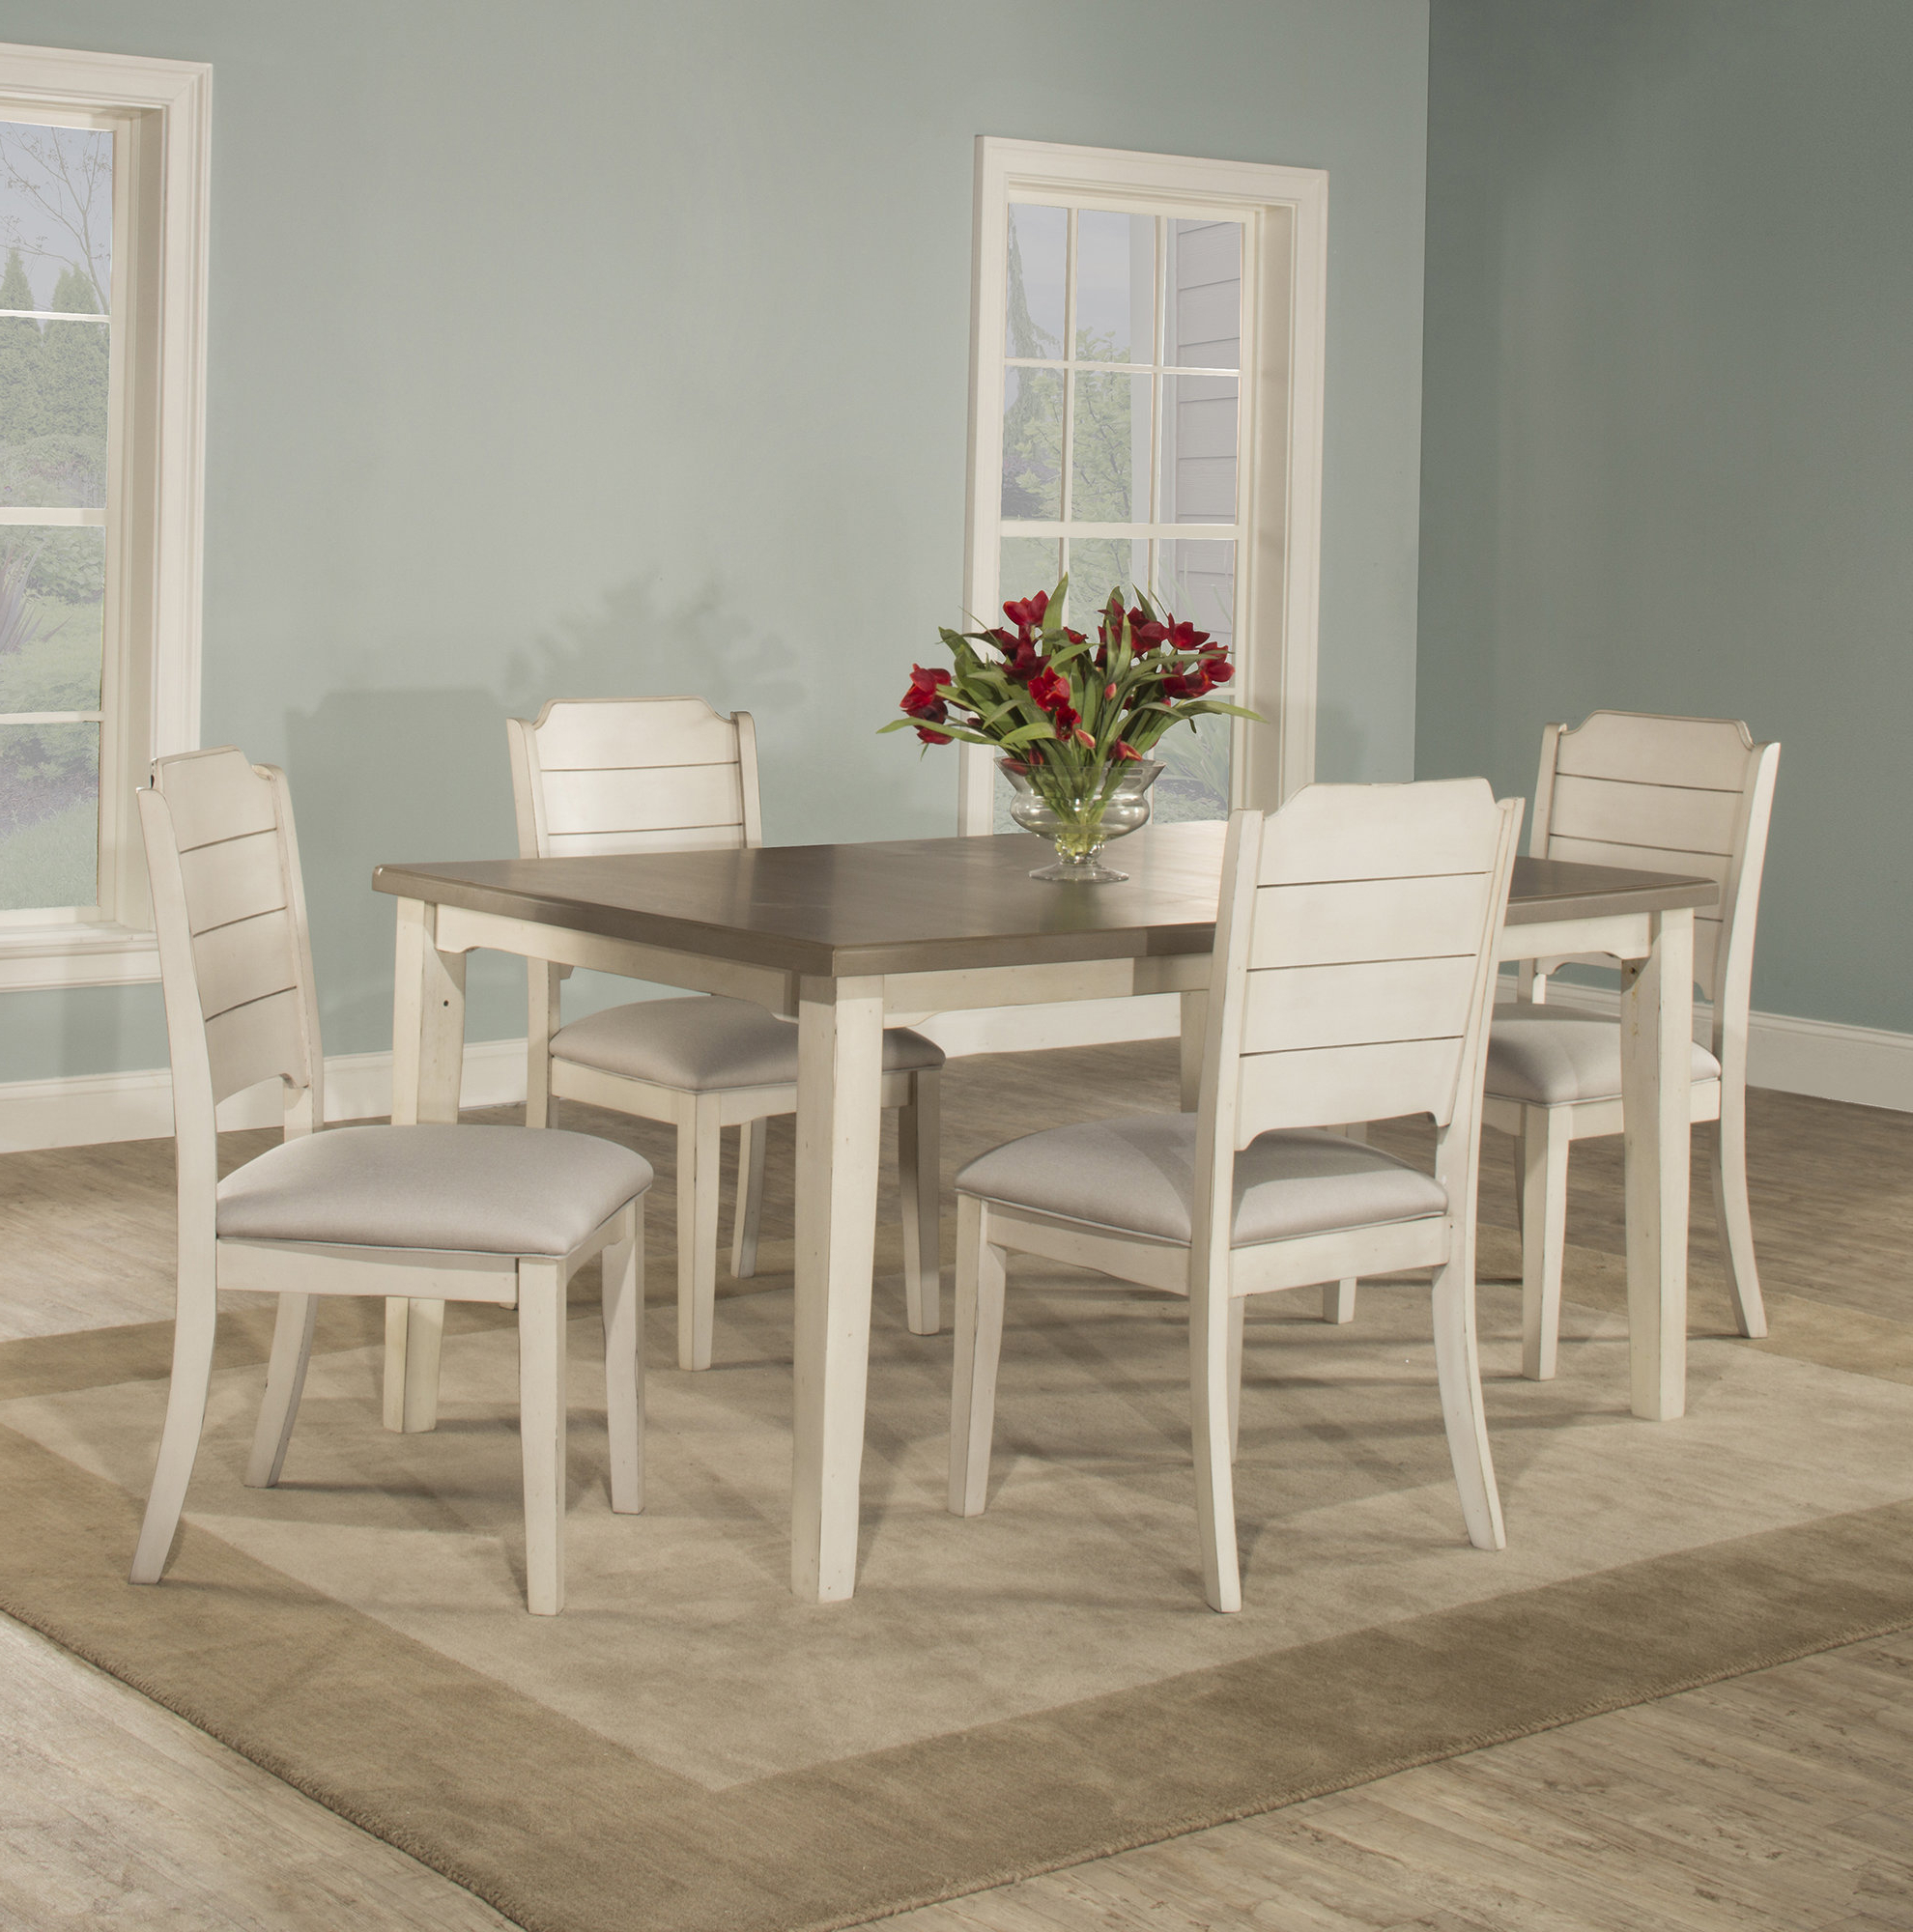 2017 Rosecliff Heights Kinsey 5 Piece Dining Set With Regard To Nutter 3 Piece Dining Sets (View 2 of 20)